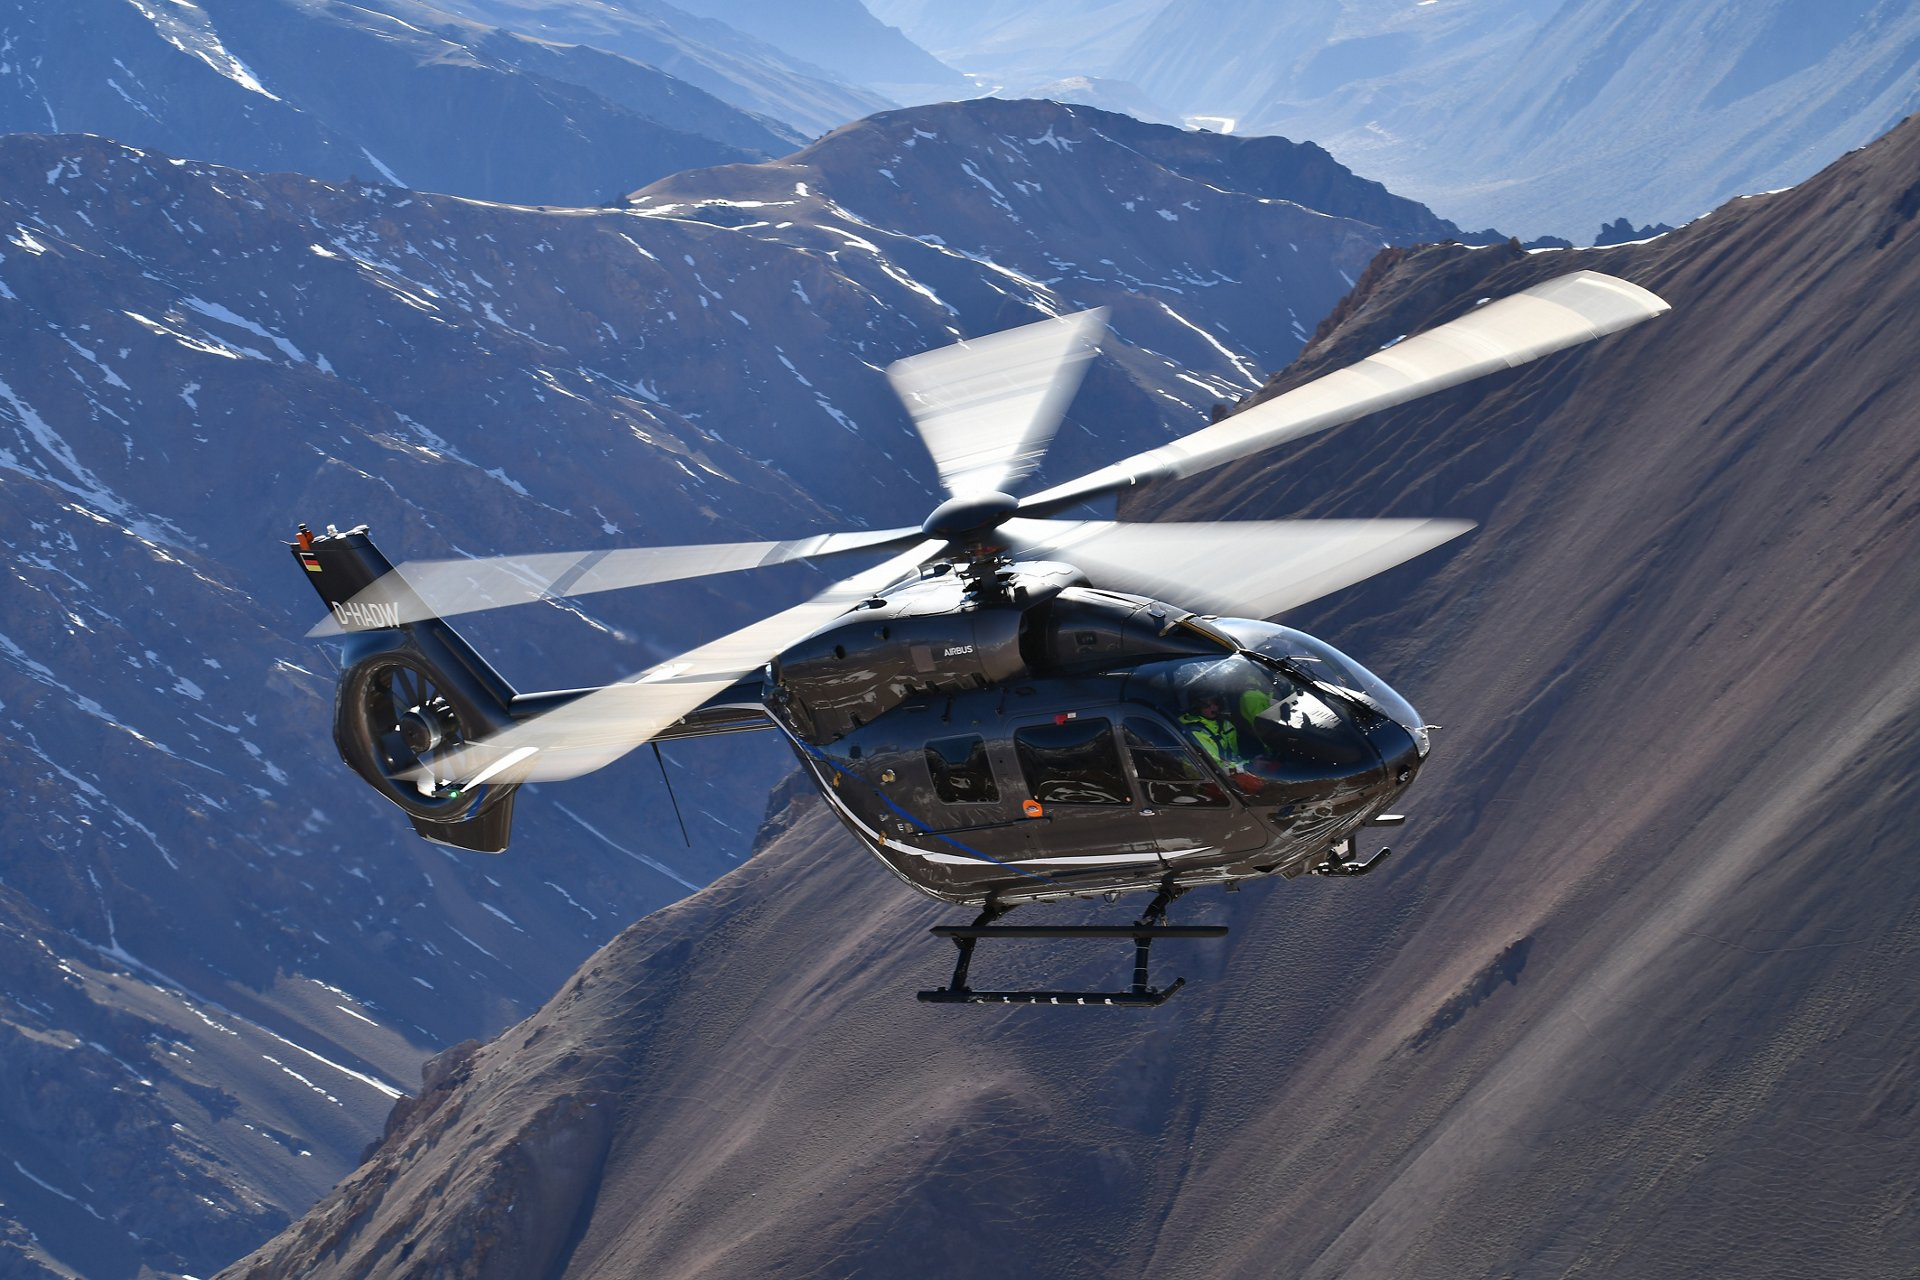 Airbus Helicopters' five-bladed H145 has been certified by the European Union Aviation Safety Agency (EASA), clearing the way for customer deliveries towards the end of summer 2020.